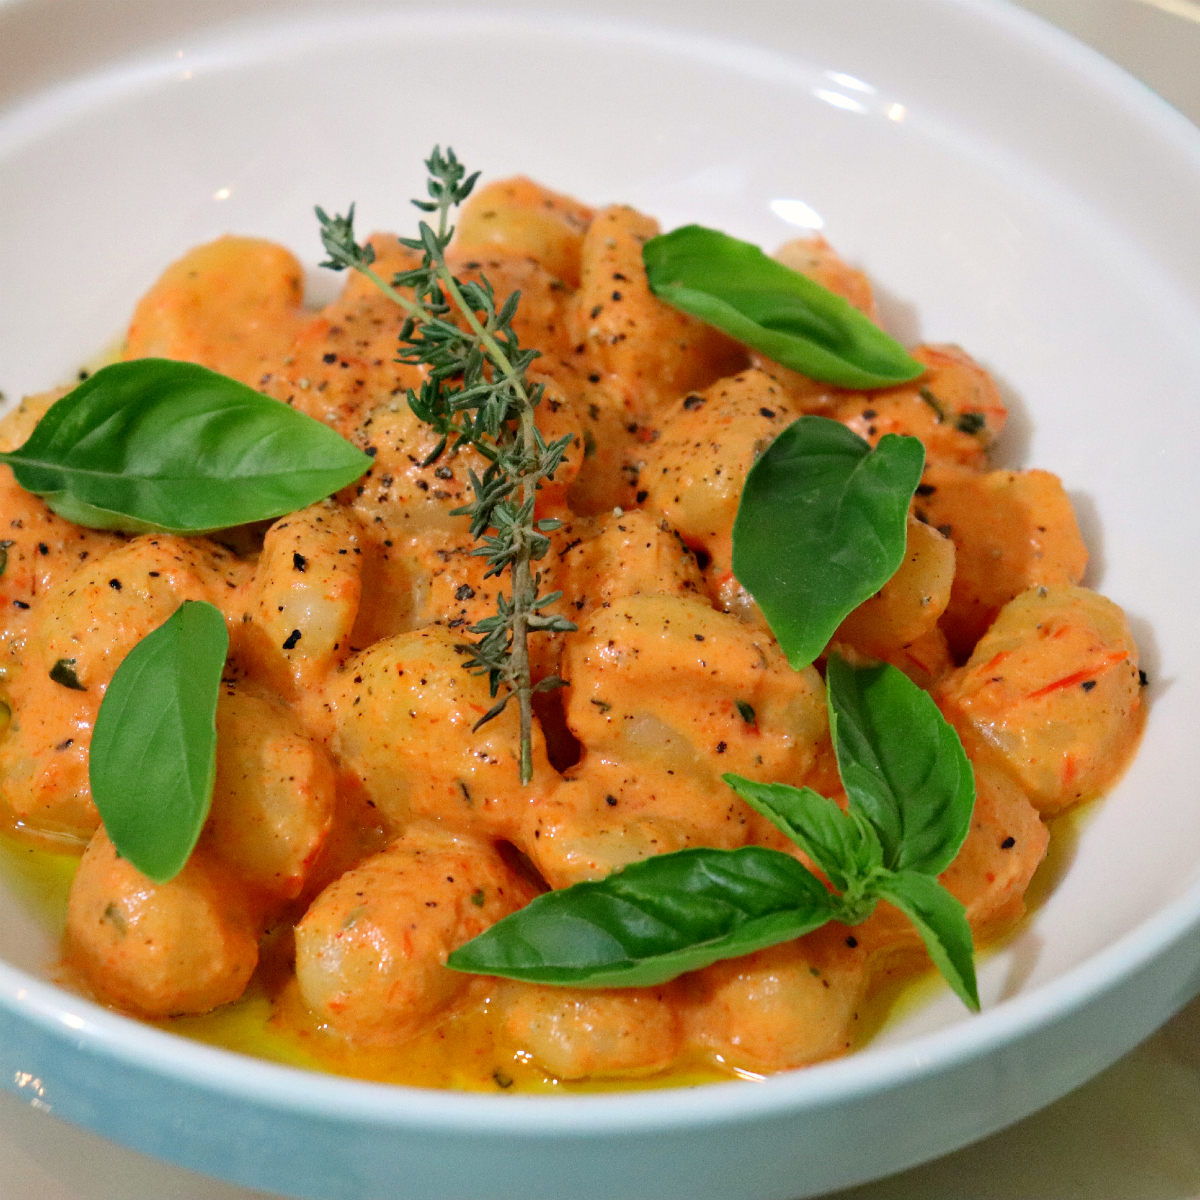 Vegan Roasted Bell Pepper & Gnocchi - The Vegan Eskimo